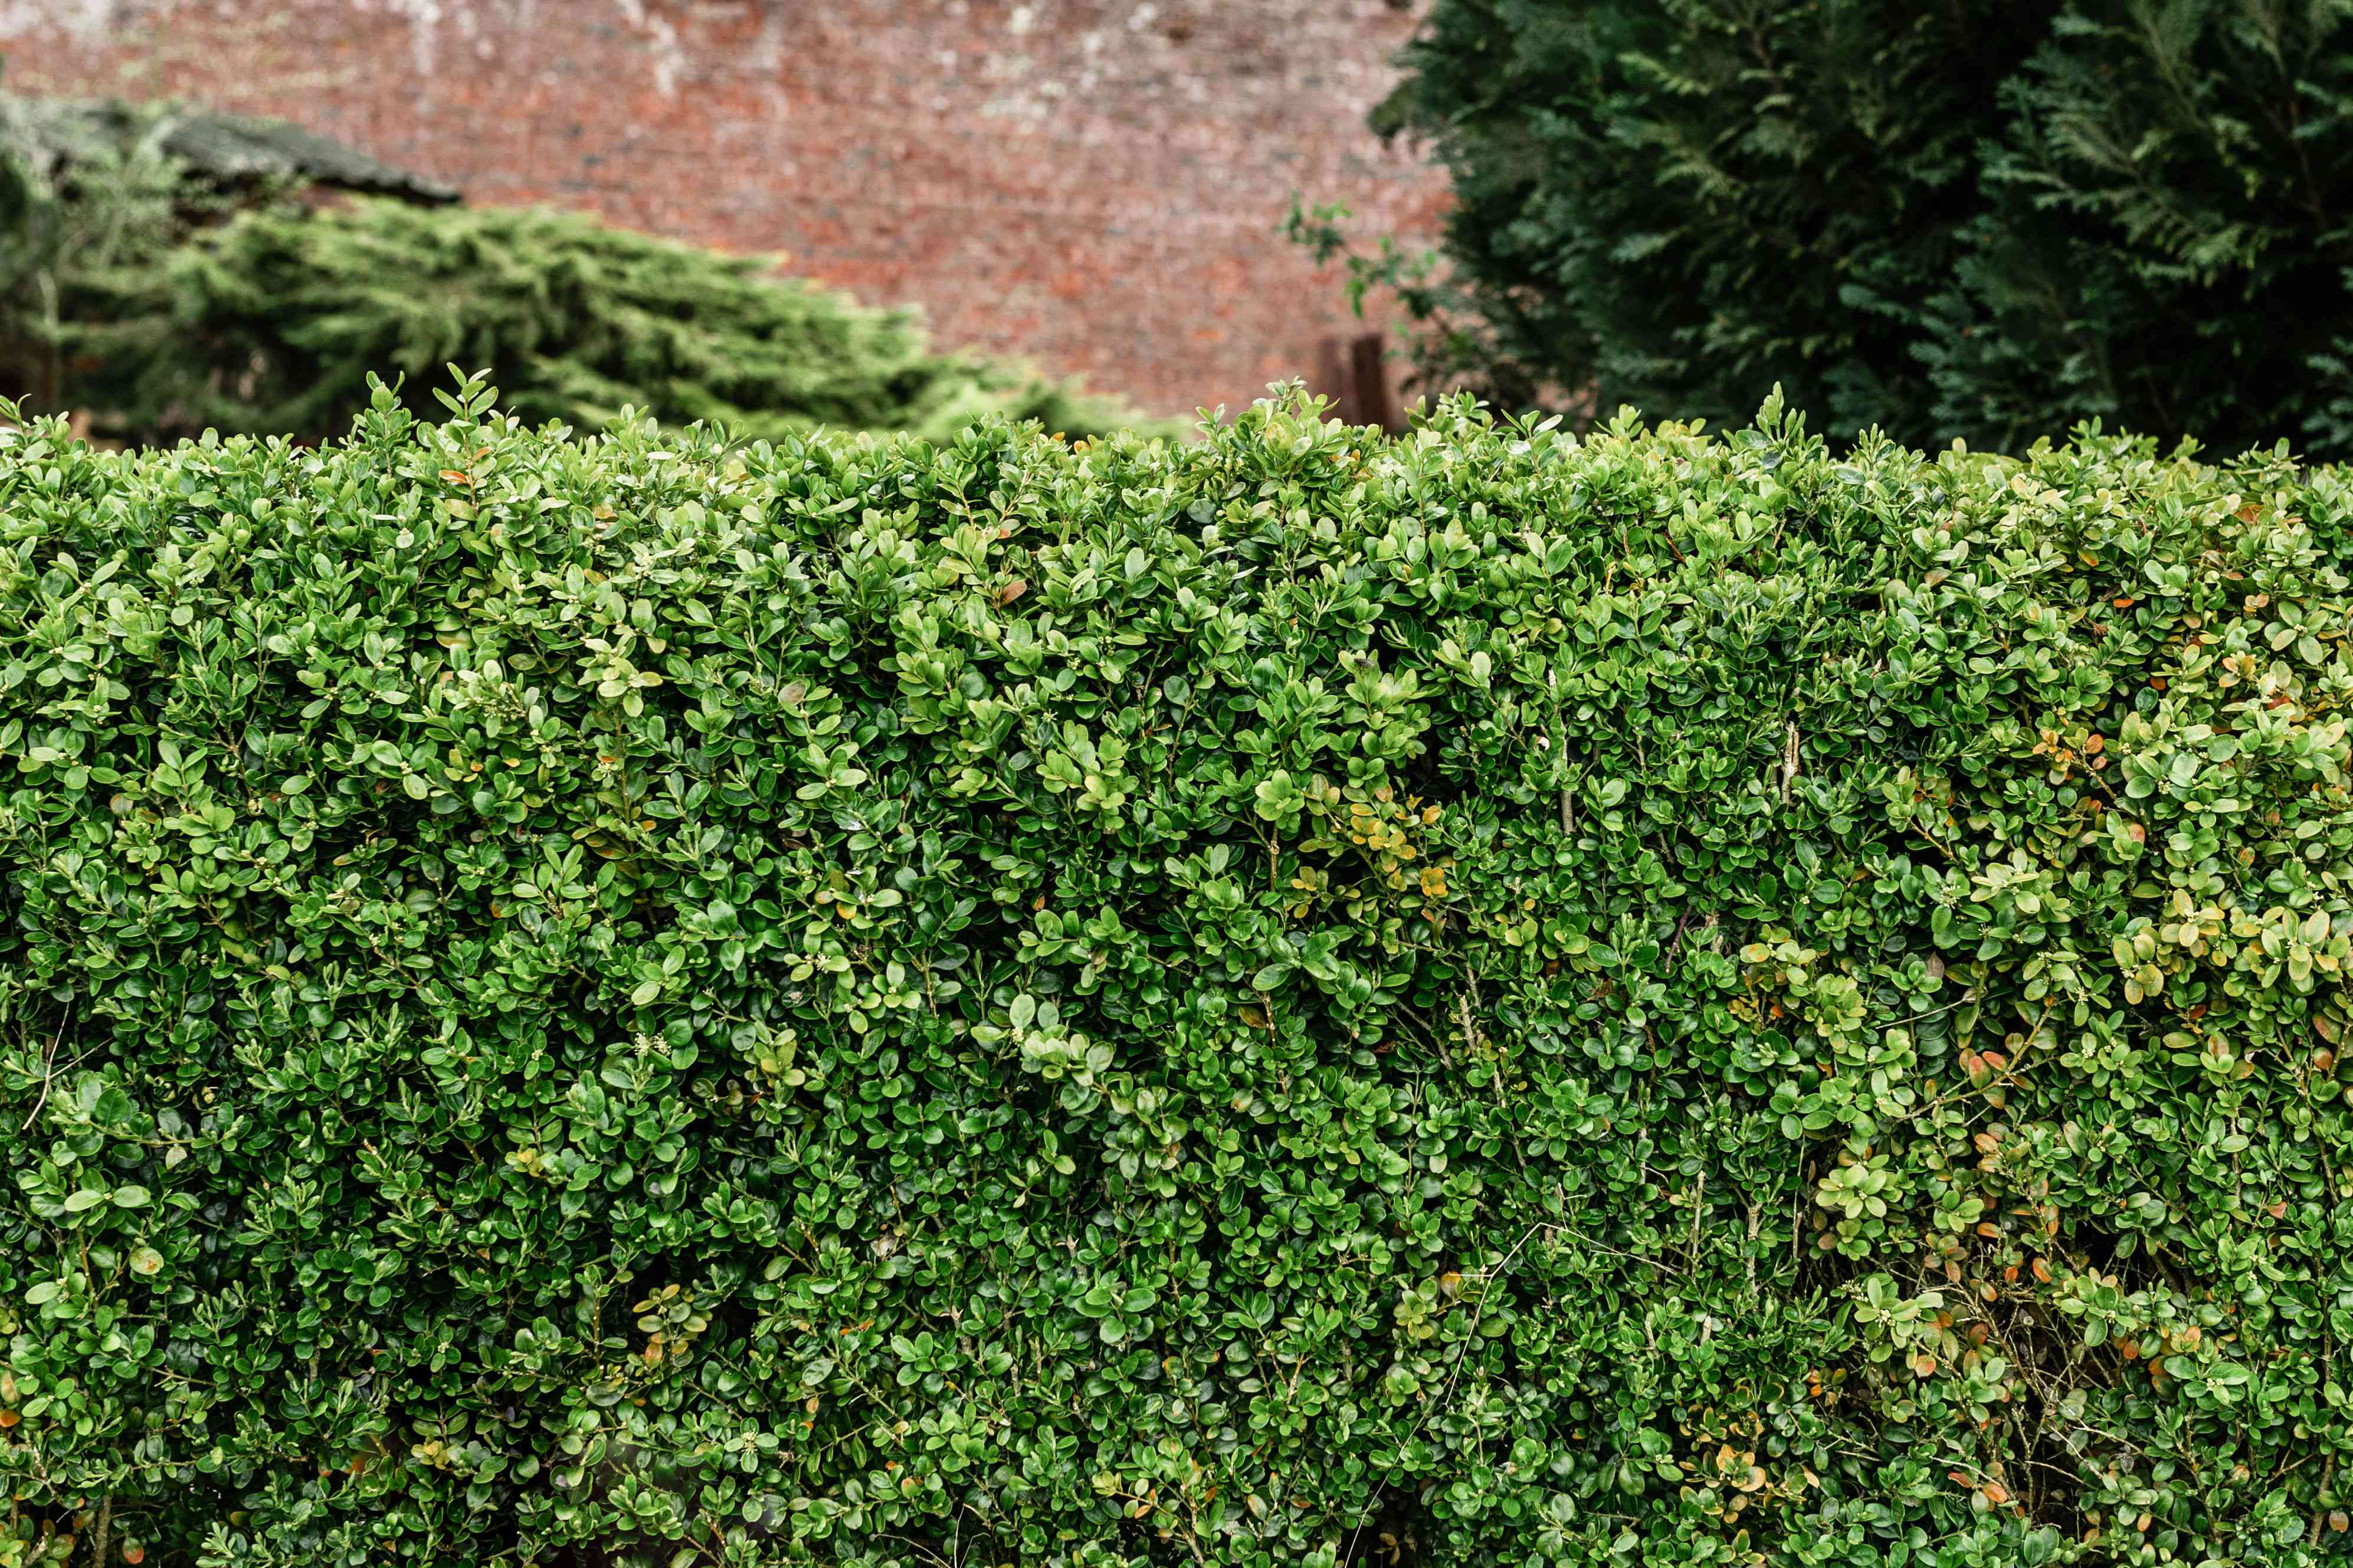 Boxwood evergreen tree with small compact leaves as hedge